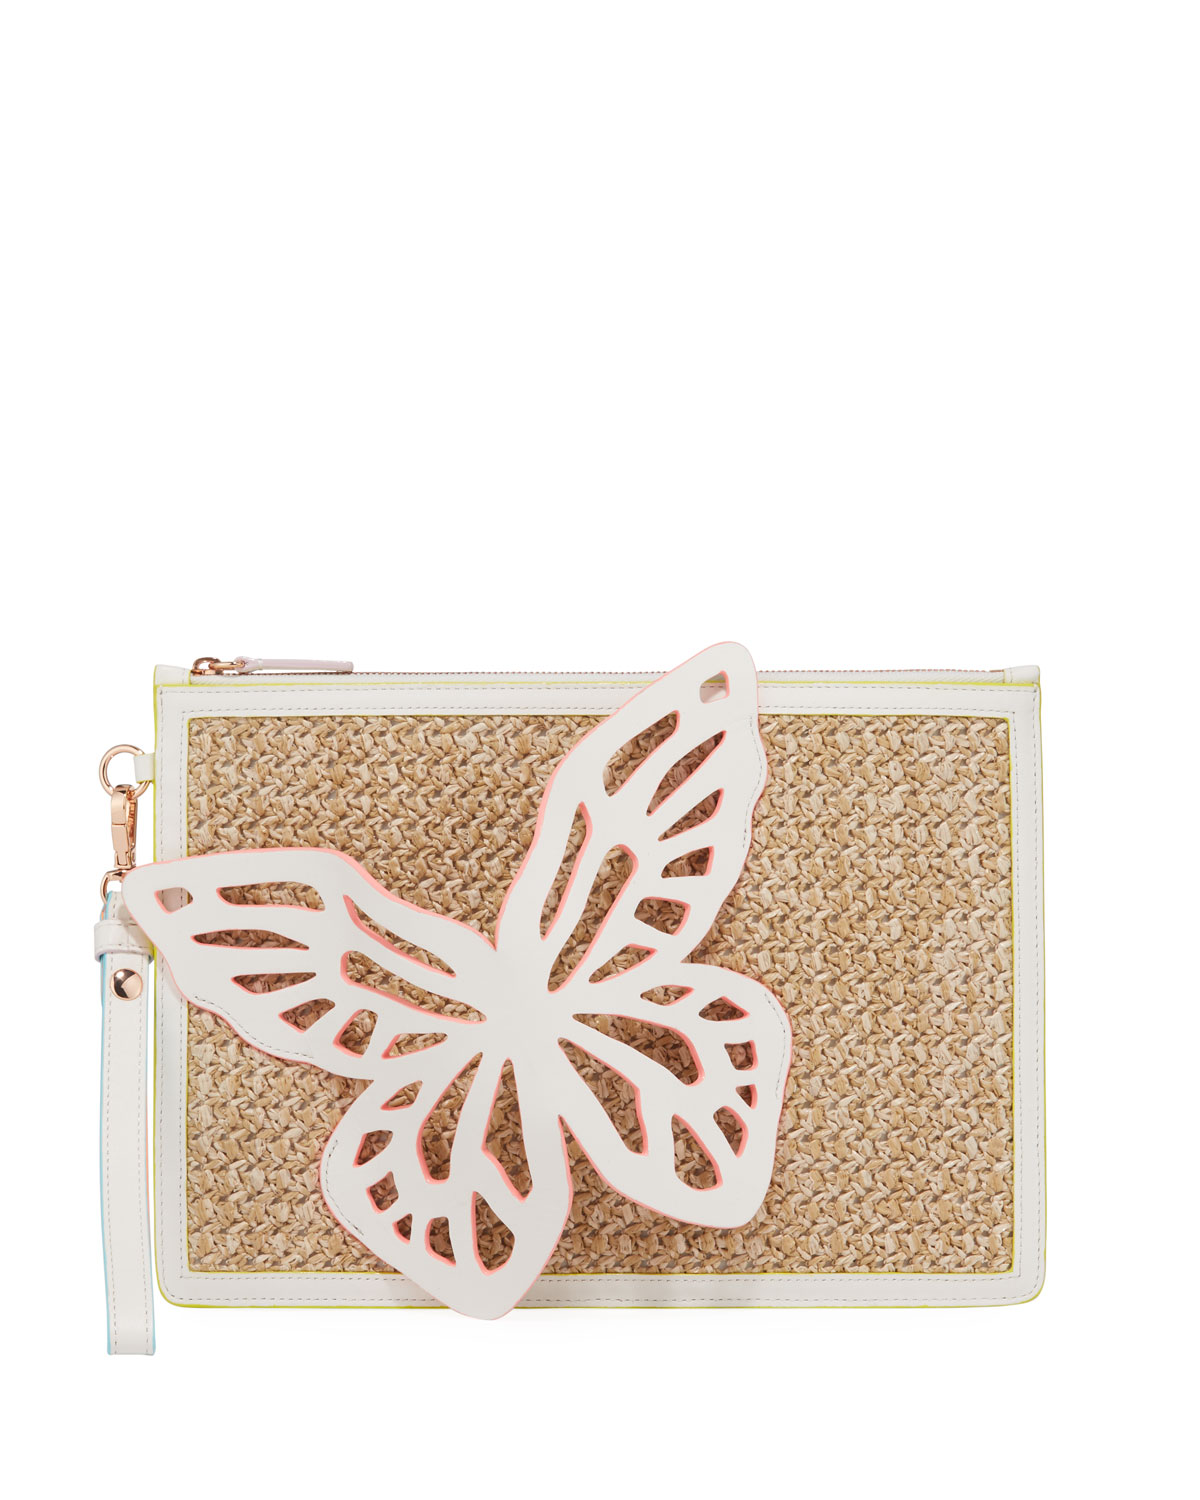 Sophia Webster Flossy Butterfly Embellished Woven Leather Pochette Clutch Bag